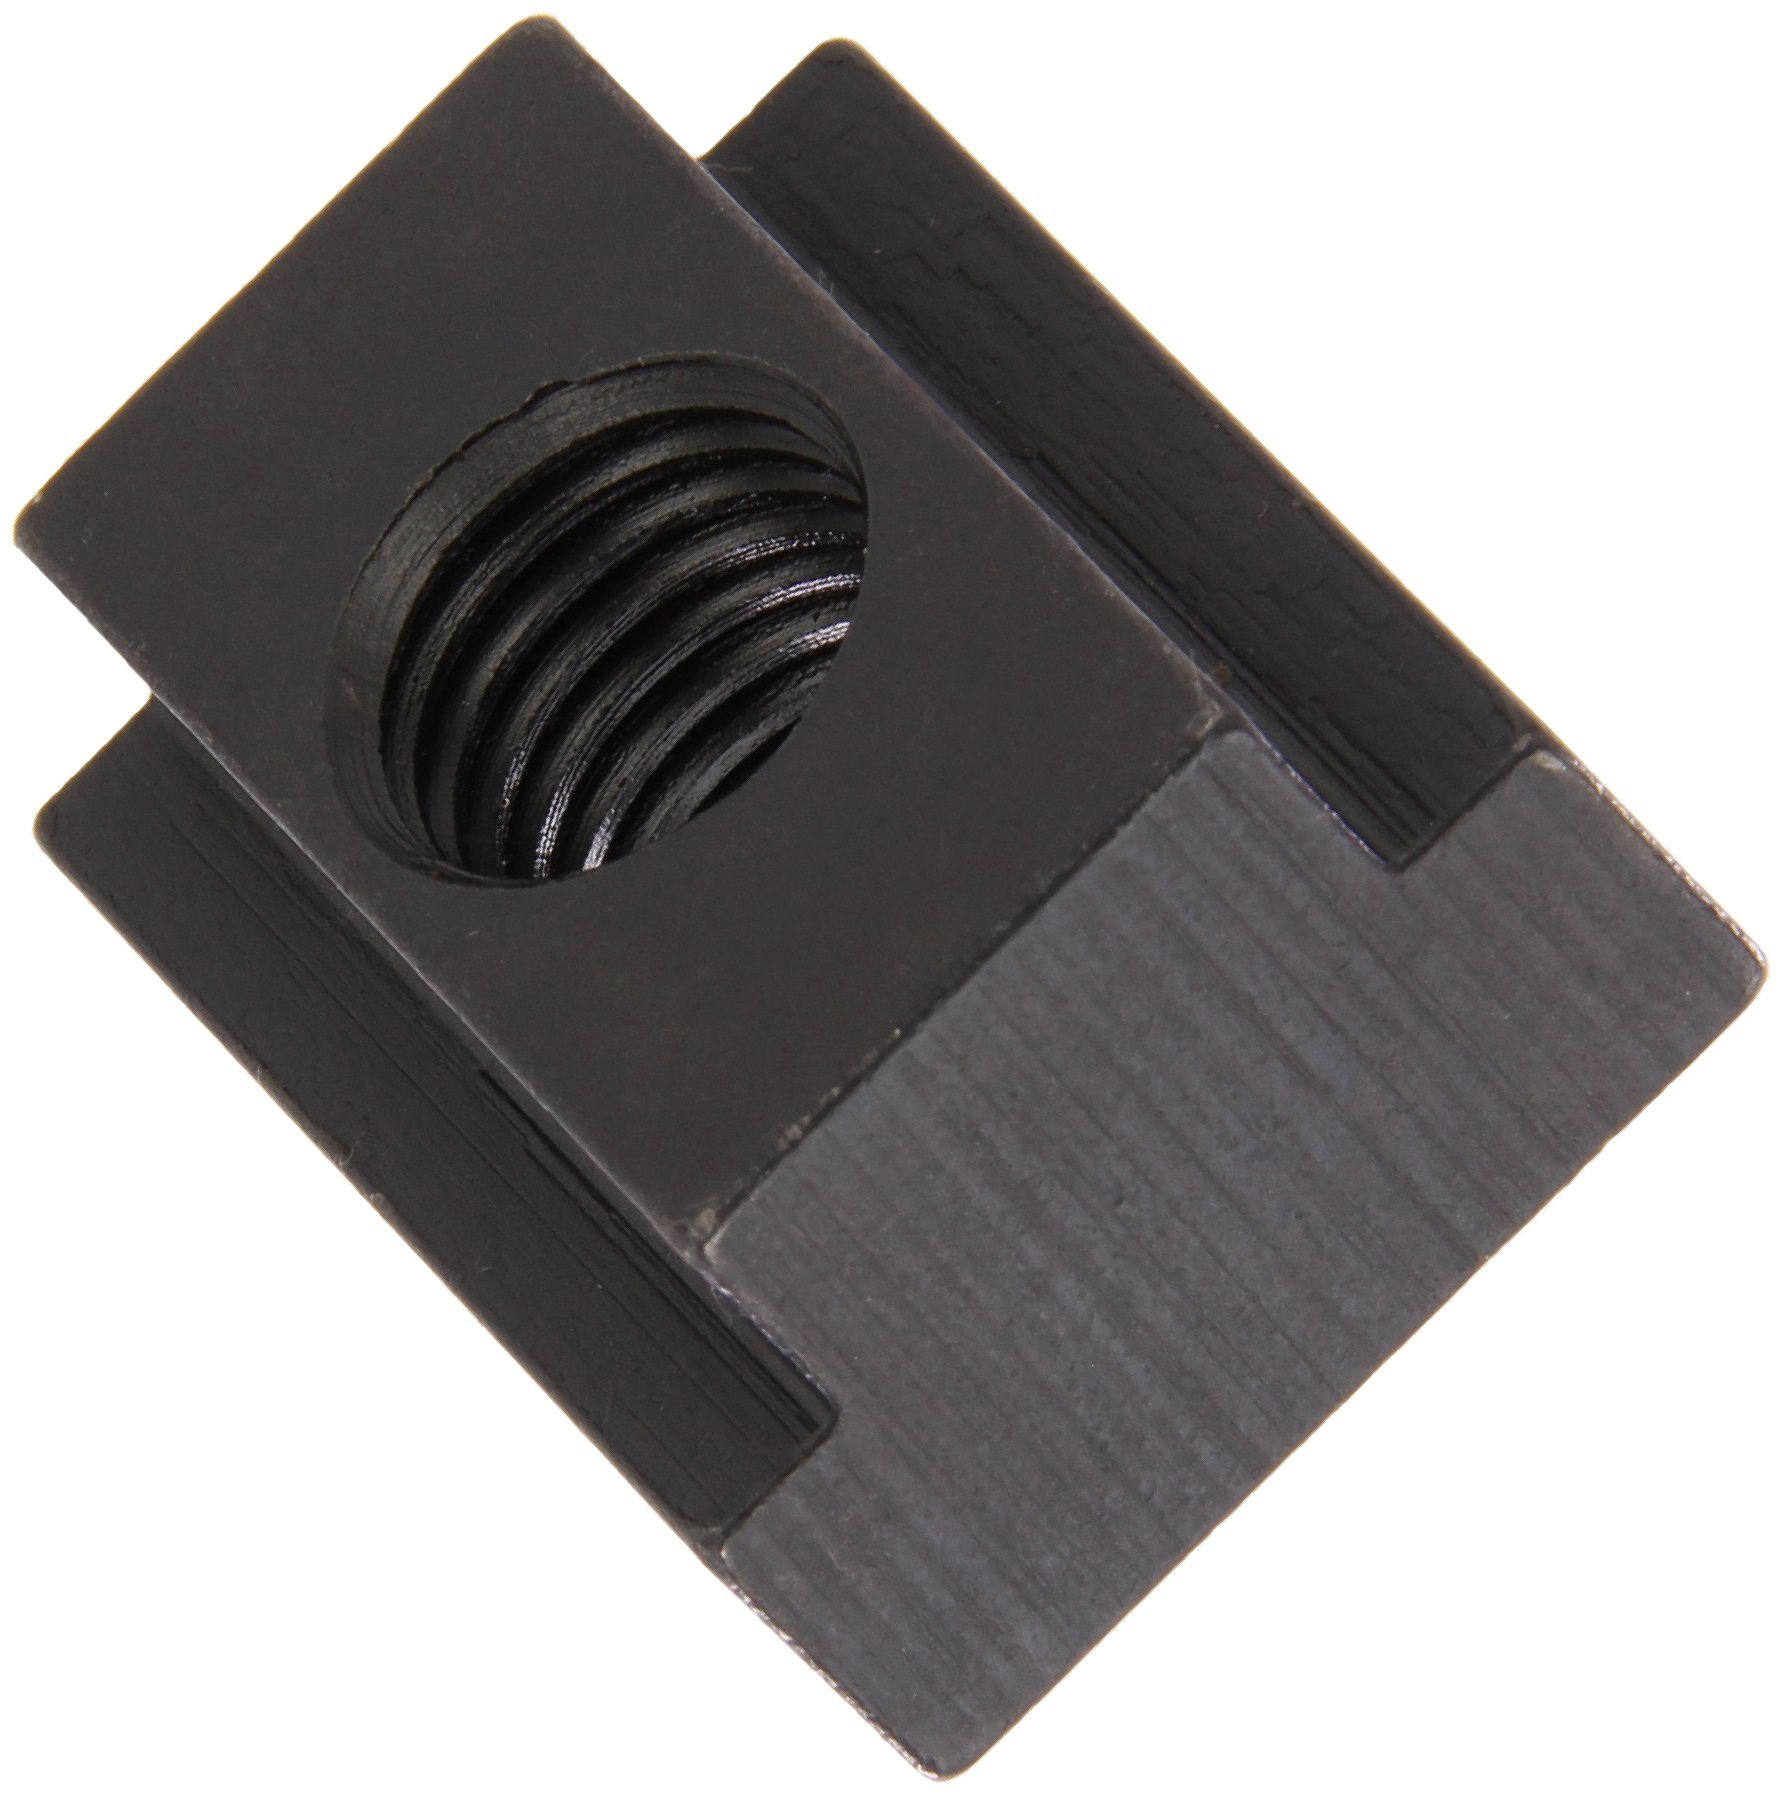 1018 Steel T-Slot Nut, Black Oxide Finish, Tapped Through, 5/16''-18 Threads, 1/2'' Height, 7/16'' Slot Depth, Made in US (Pack of 5) by Small Parts